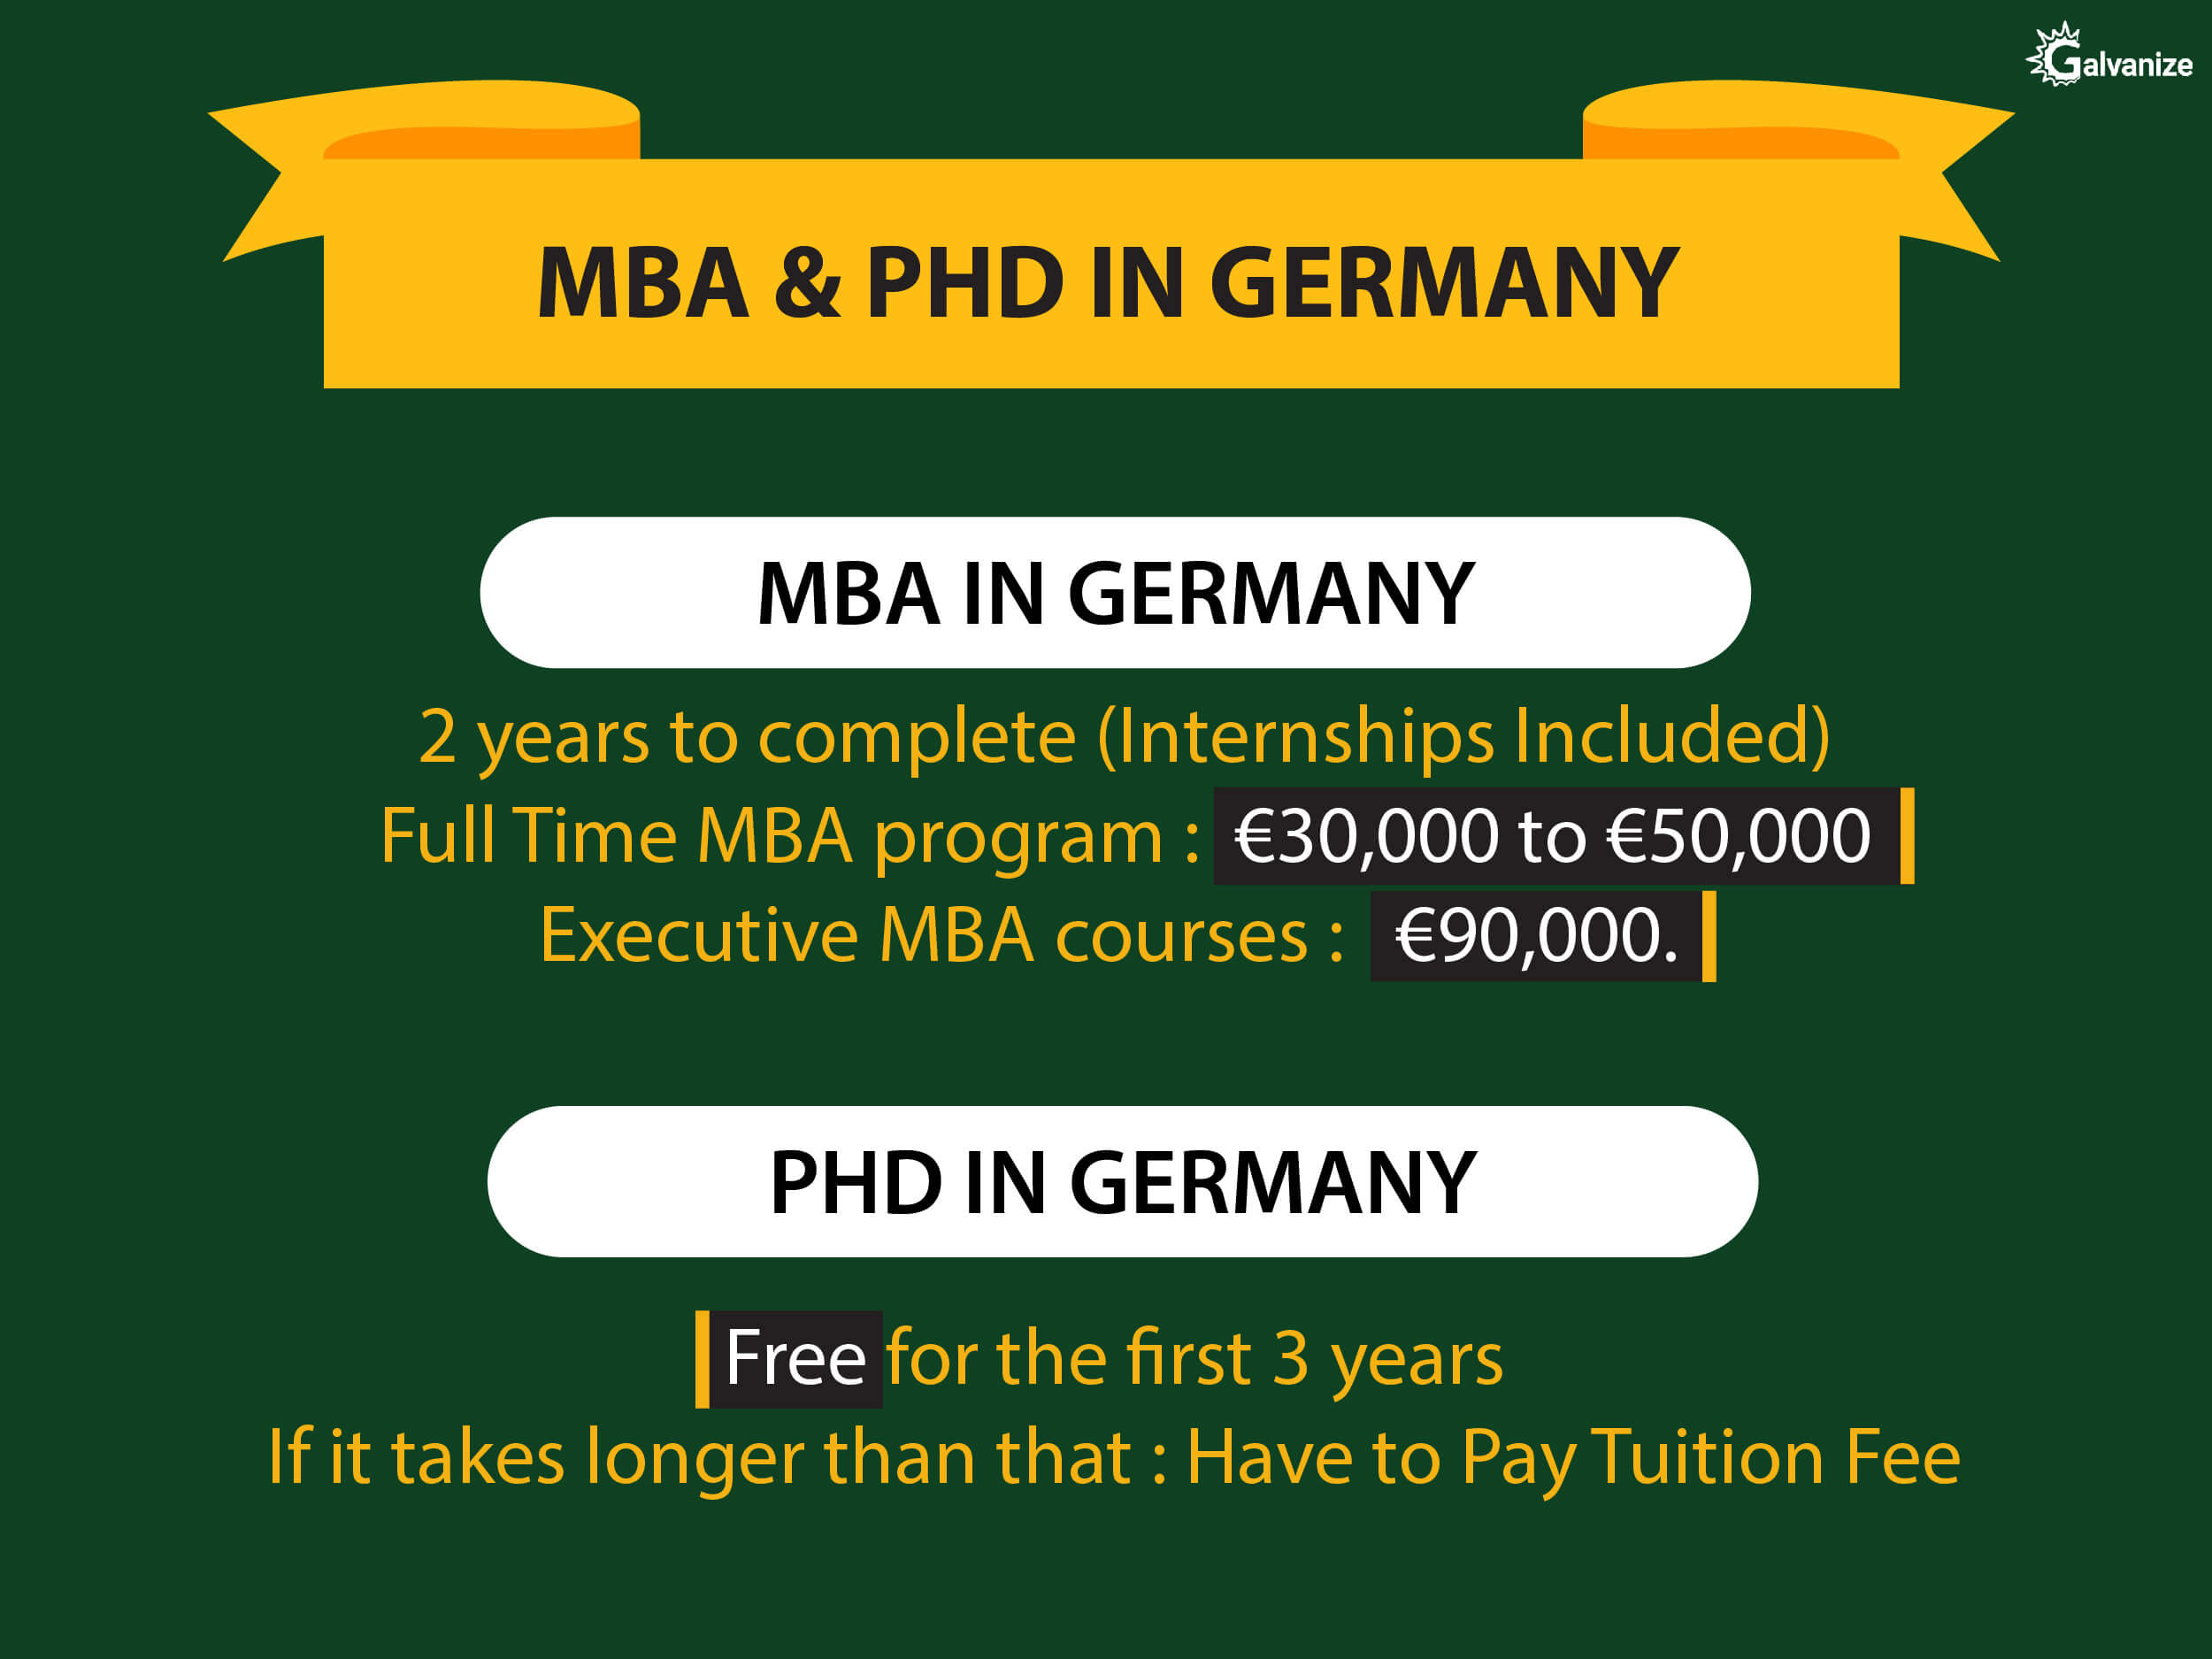 mba and phd-in Germany